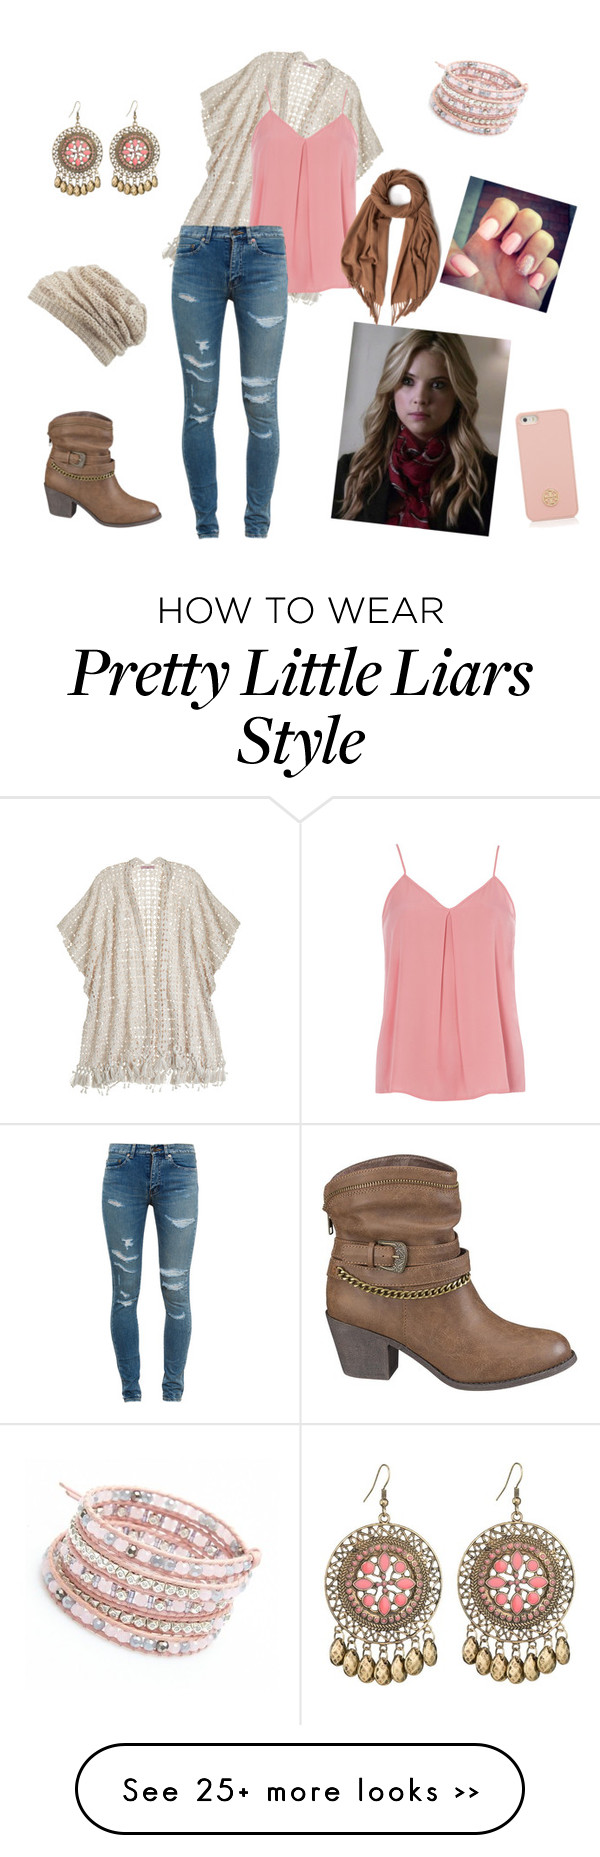 """""""#toocute"""" by alyssa011 on Polyvore featuring Calypso St. Barth, maurices, OPI, NAKAMOL, Dorothy Perkins, Yves Saint Laurent, Acne Studios and Tory Burch"""